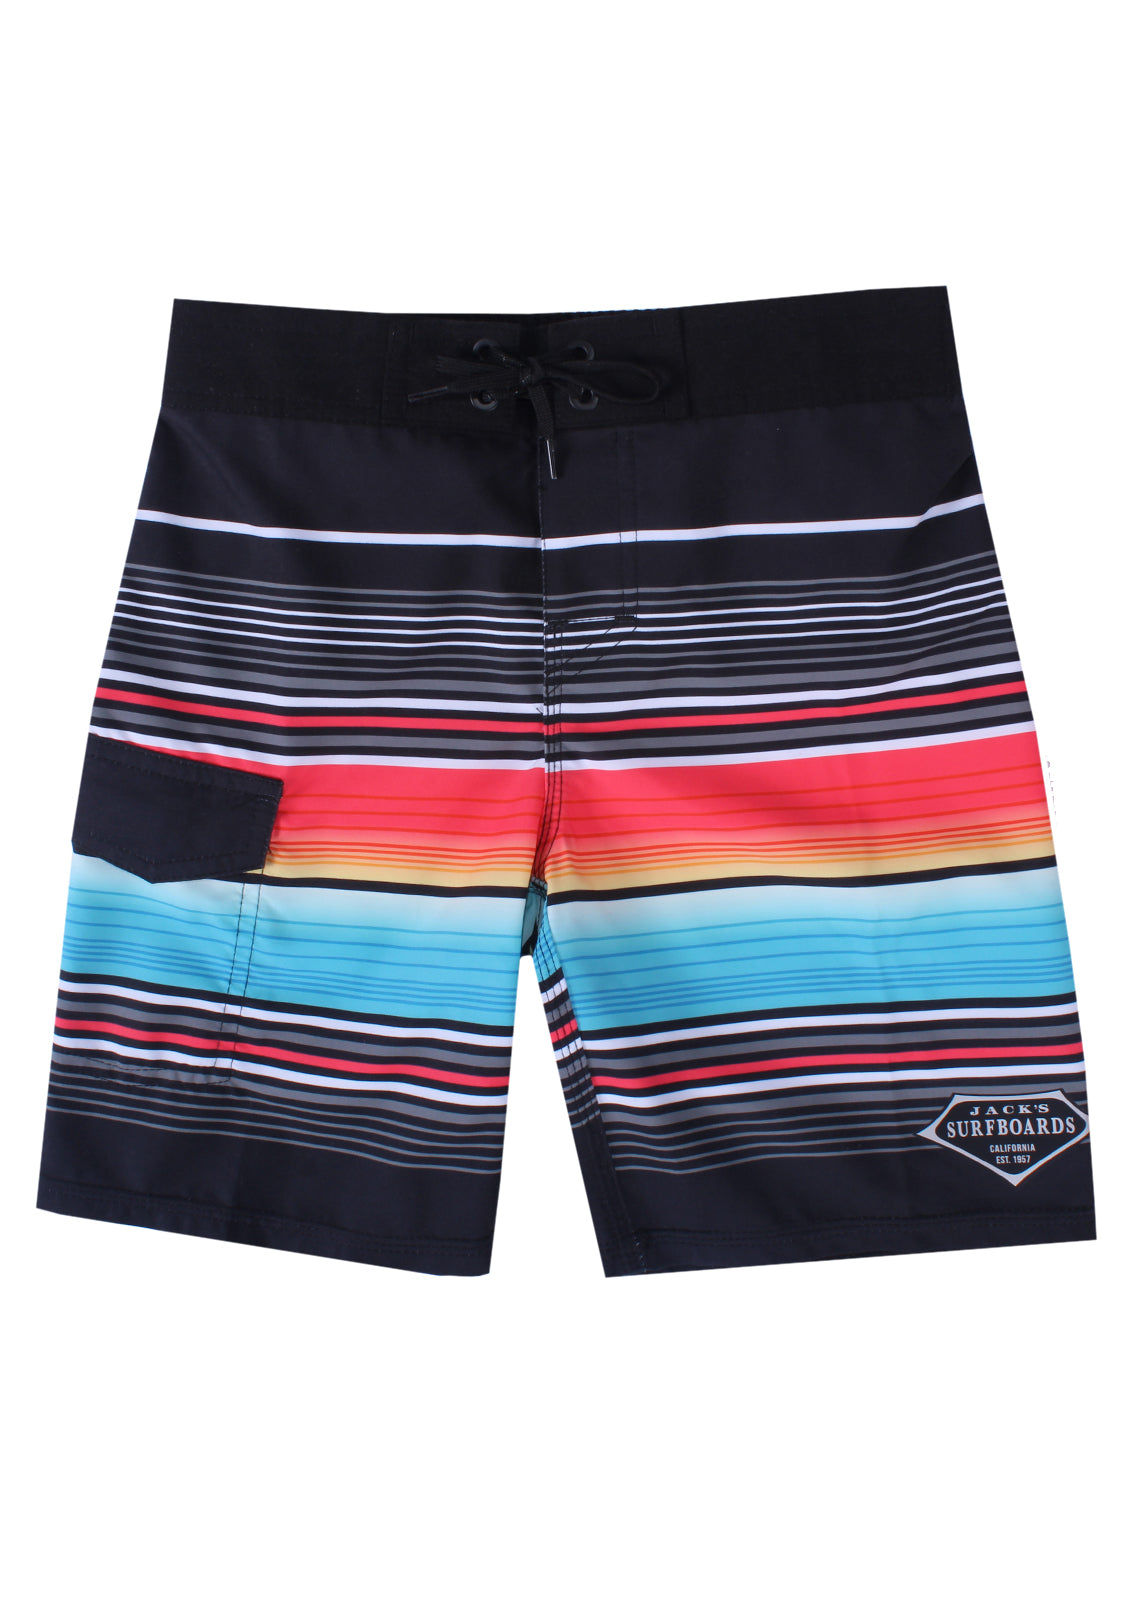 Jacks Surfboards Toddler Transmit Boardshort